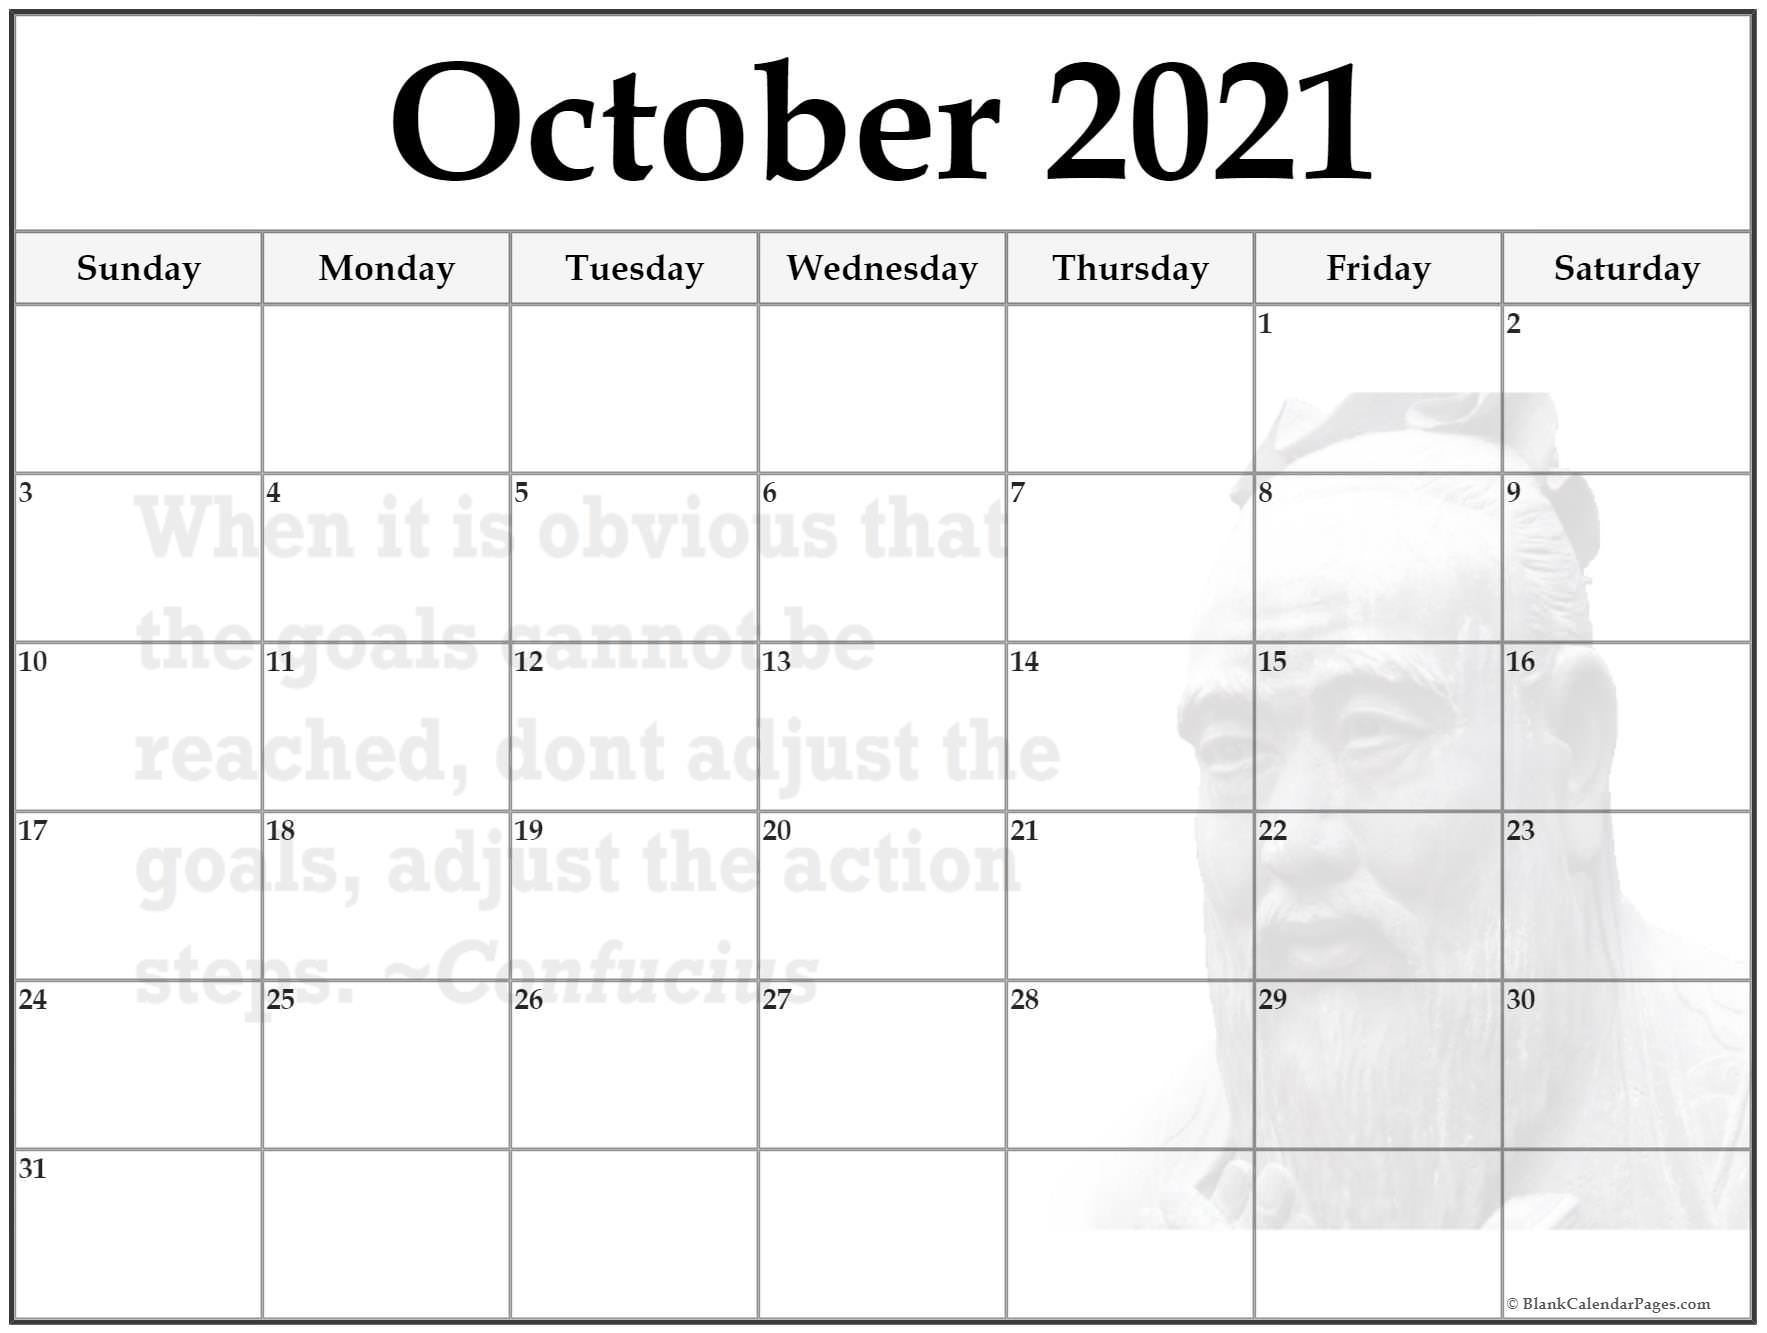 October 2020 confucius calendar. When it is obvious that the goals cannot be reached, don't adjust the goals, adjust the action steps ~Confucius